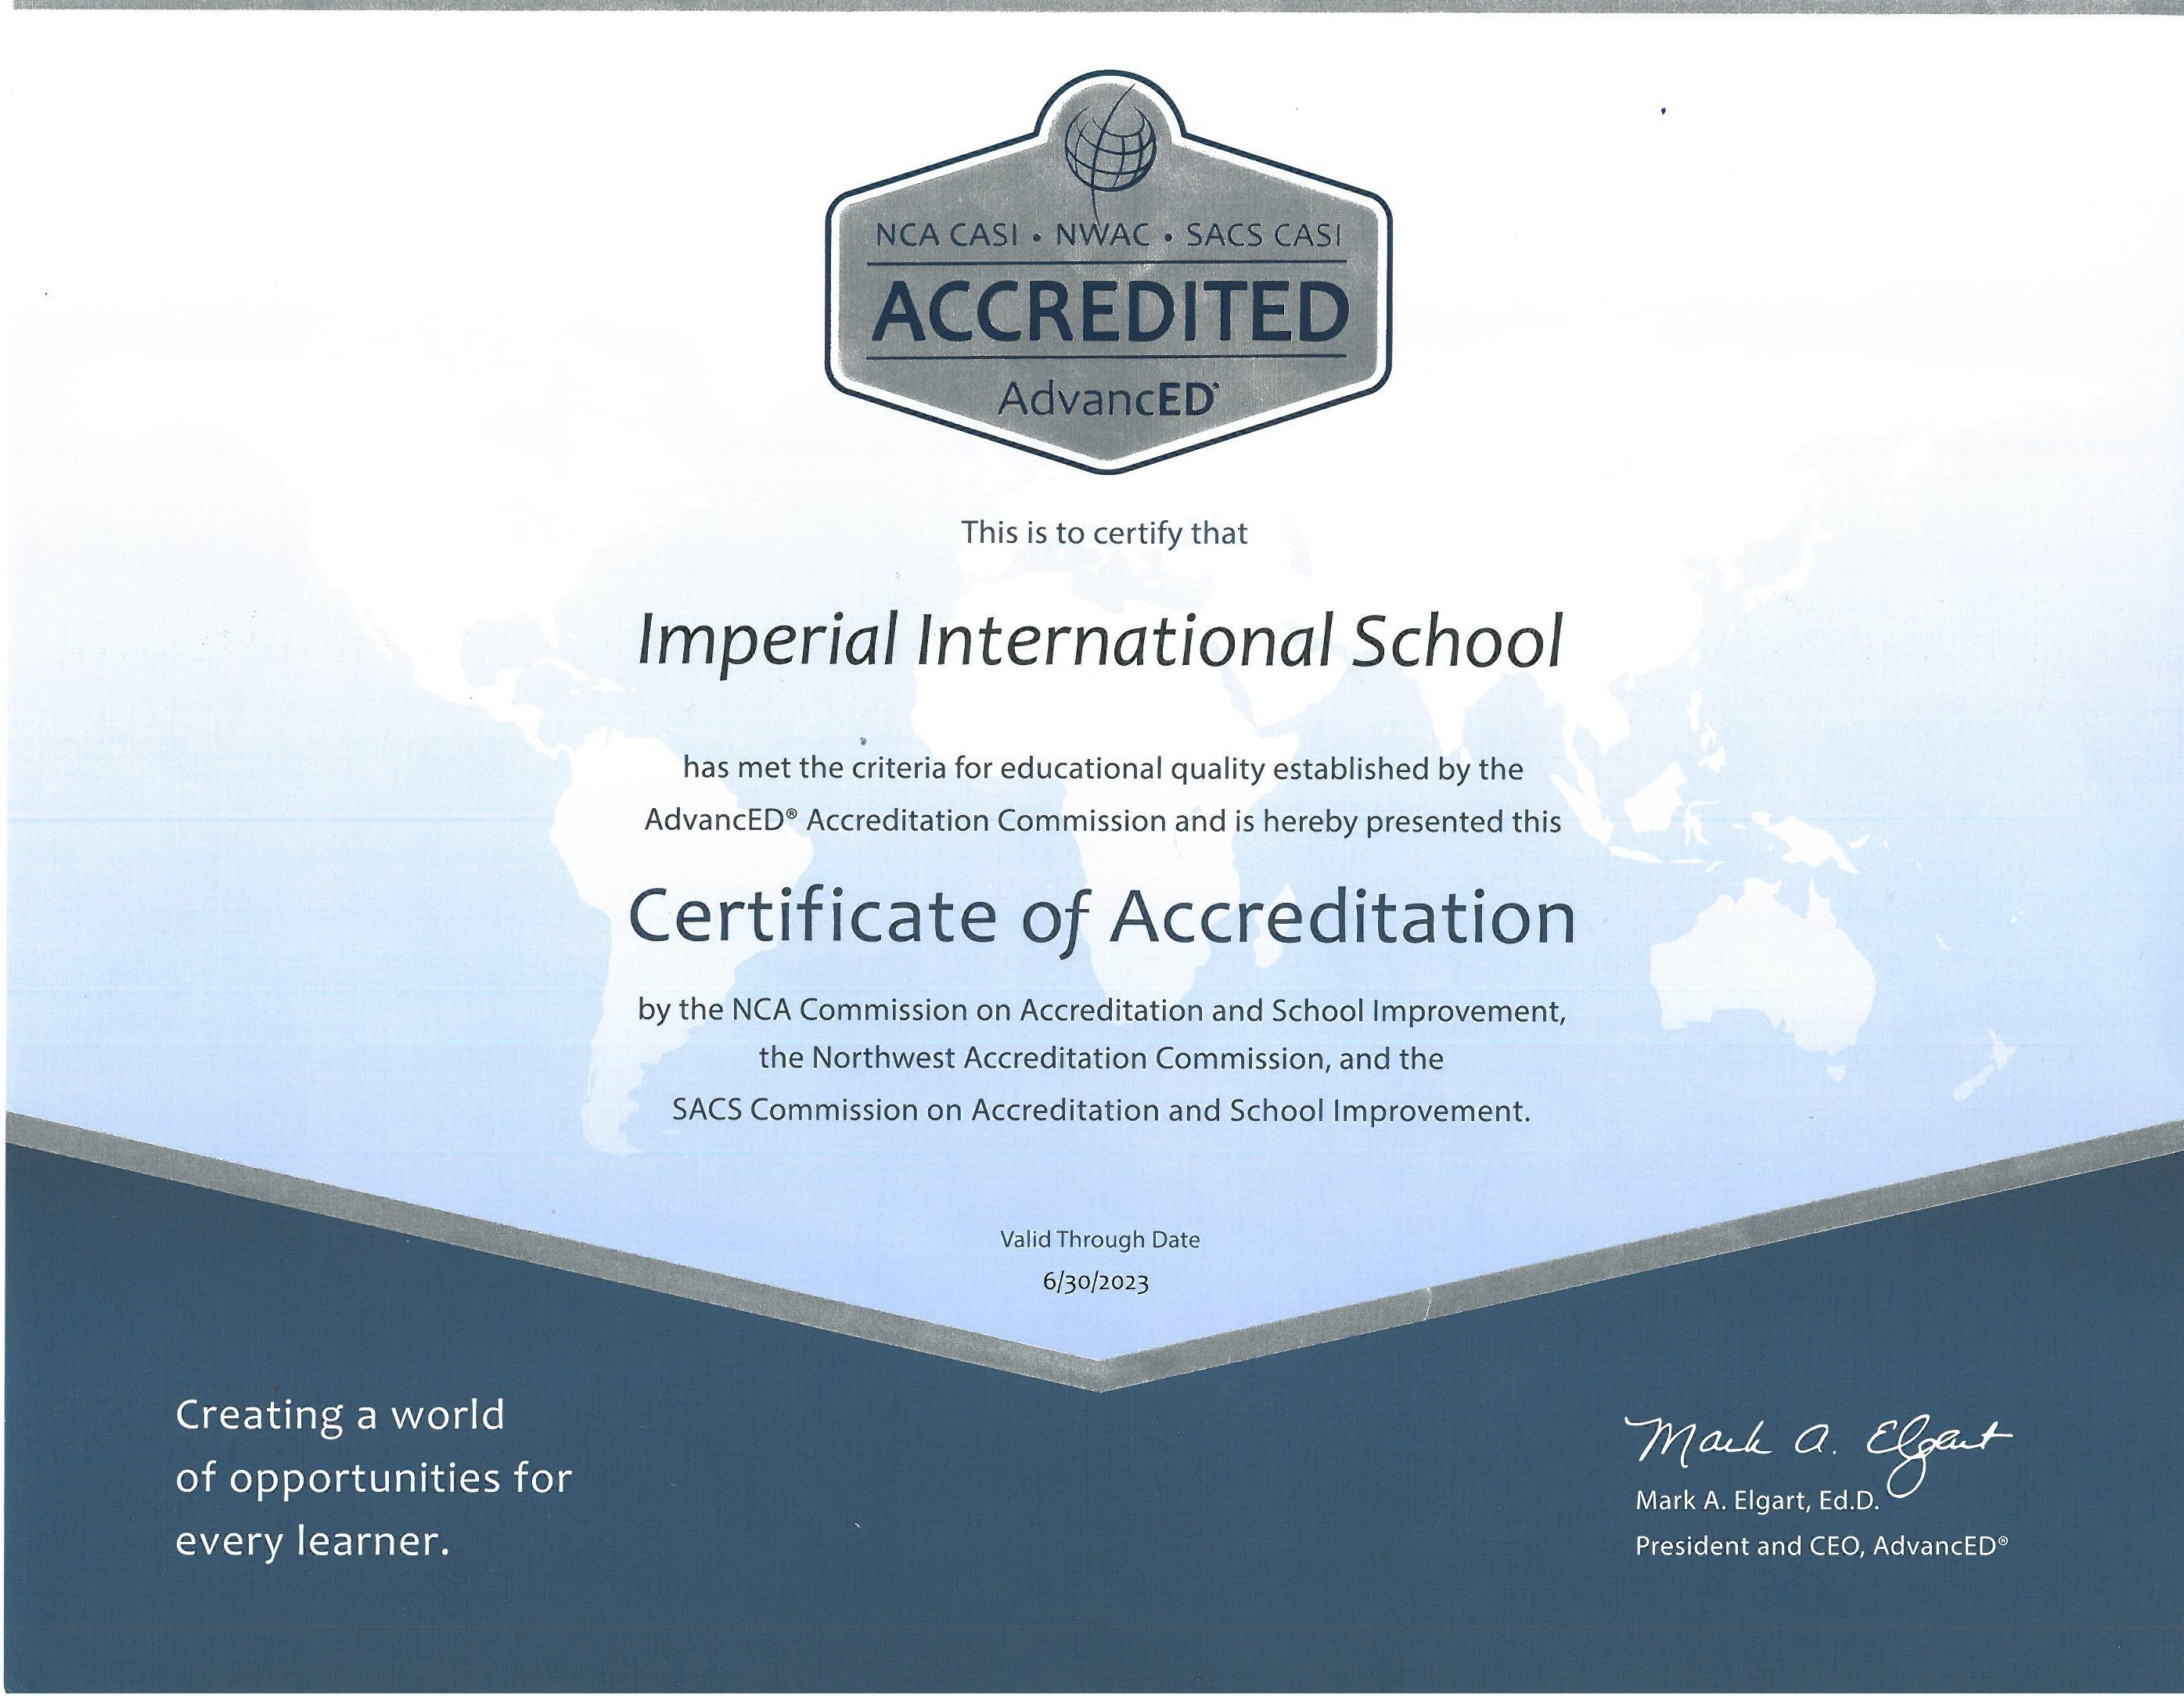 AdvancED Accreditation Certificate